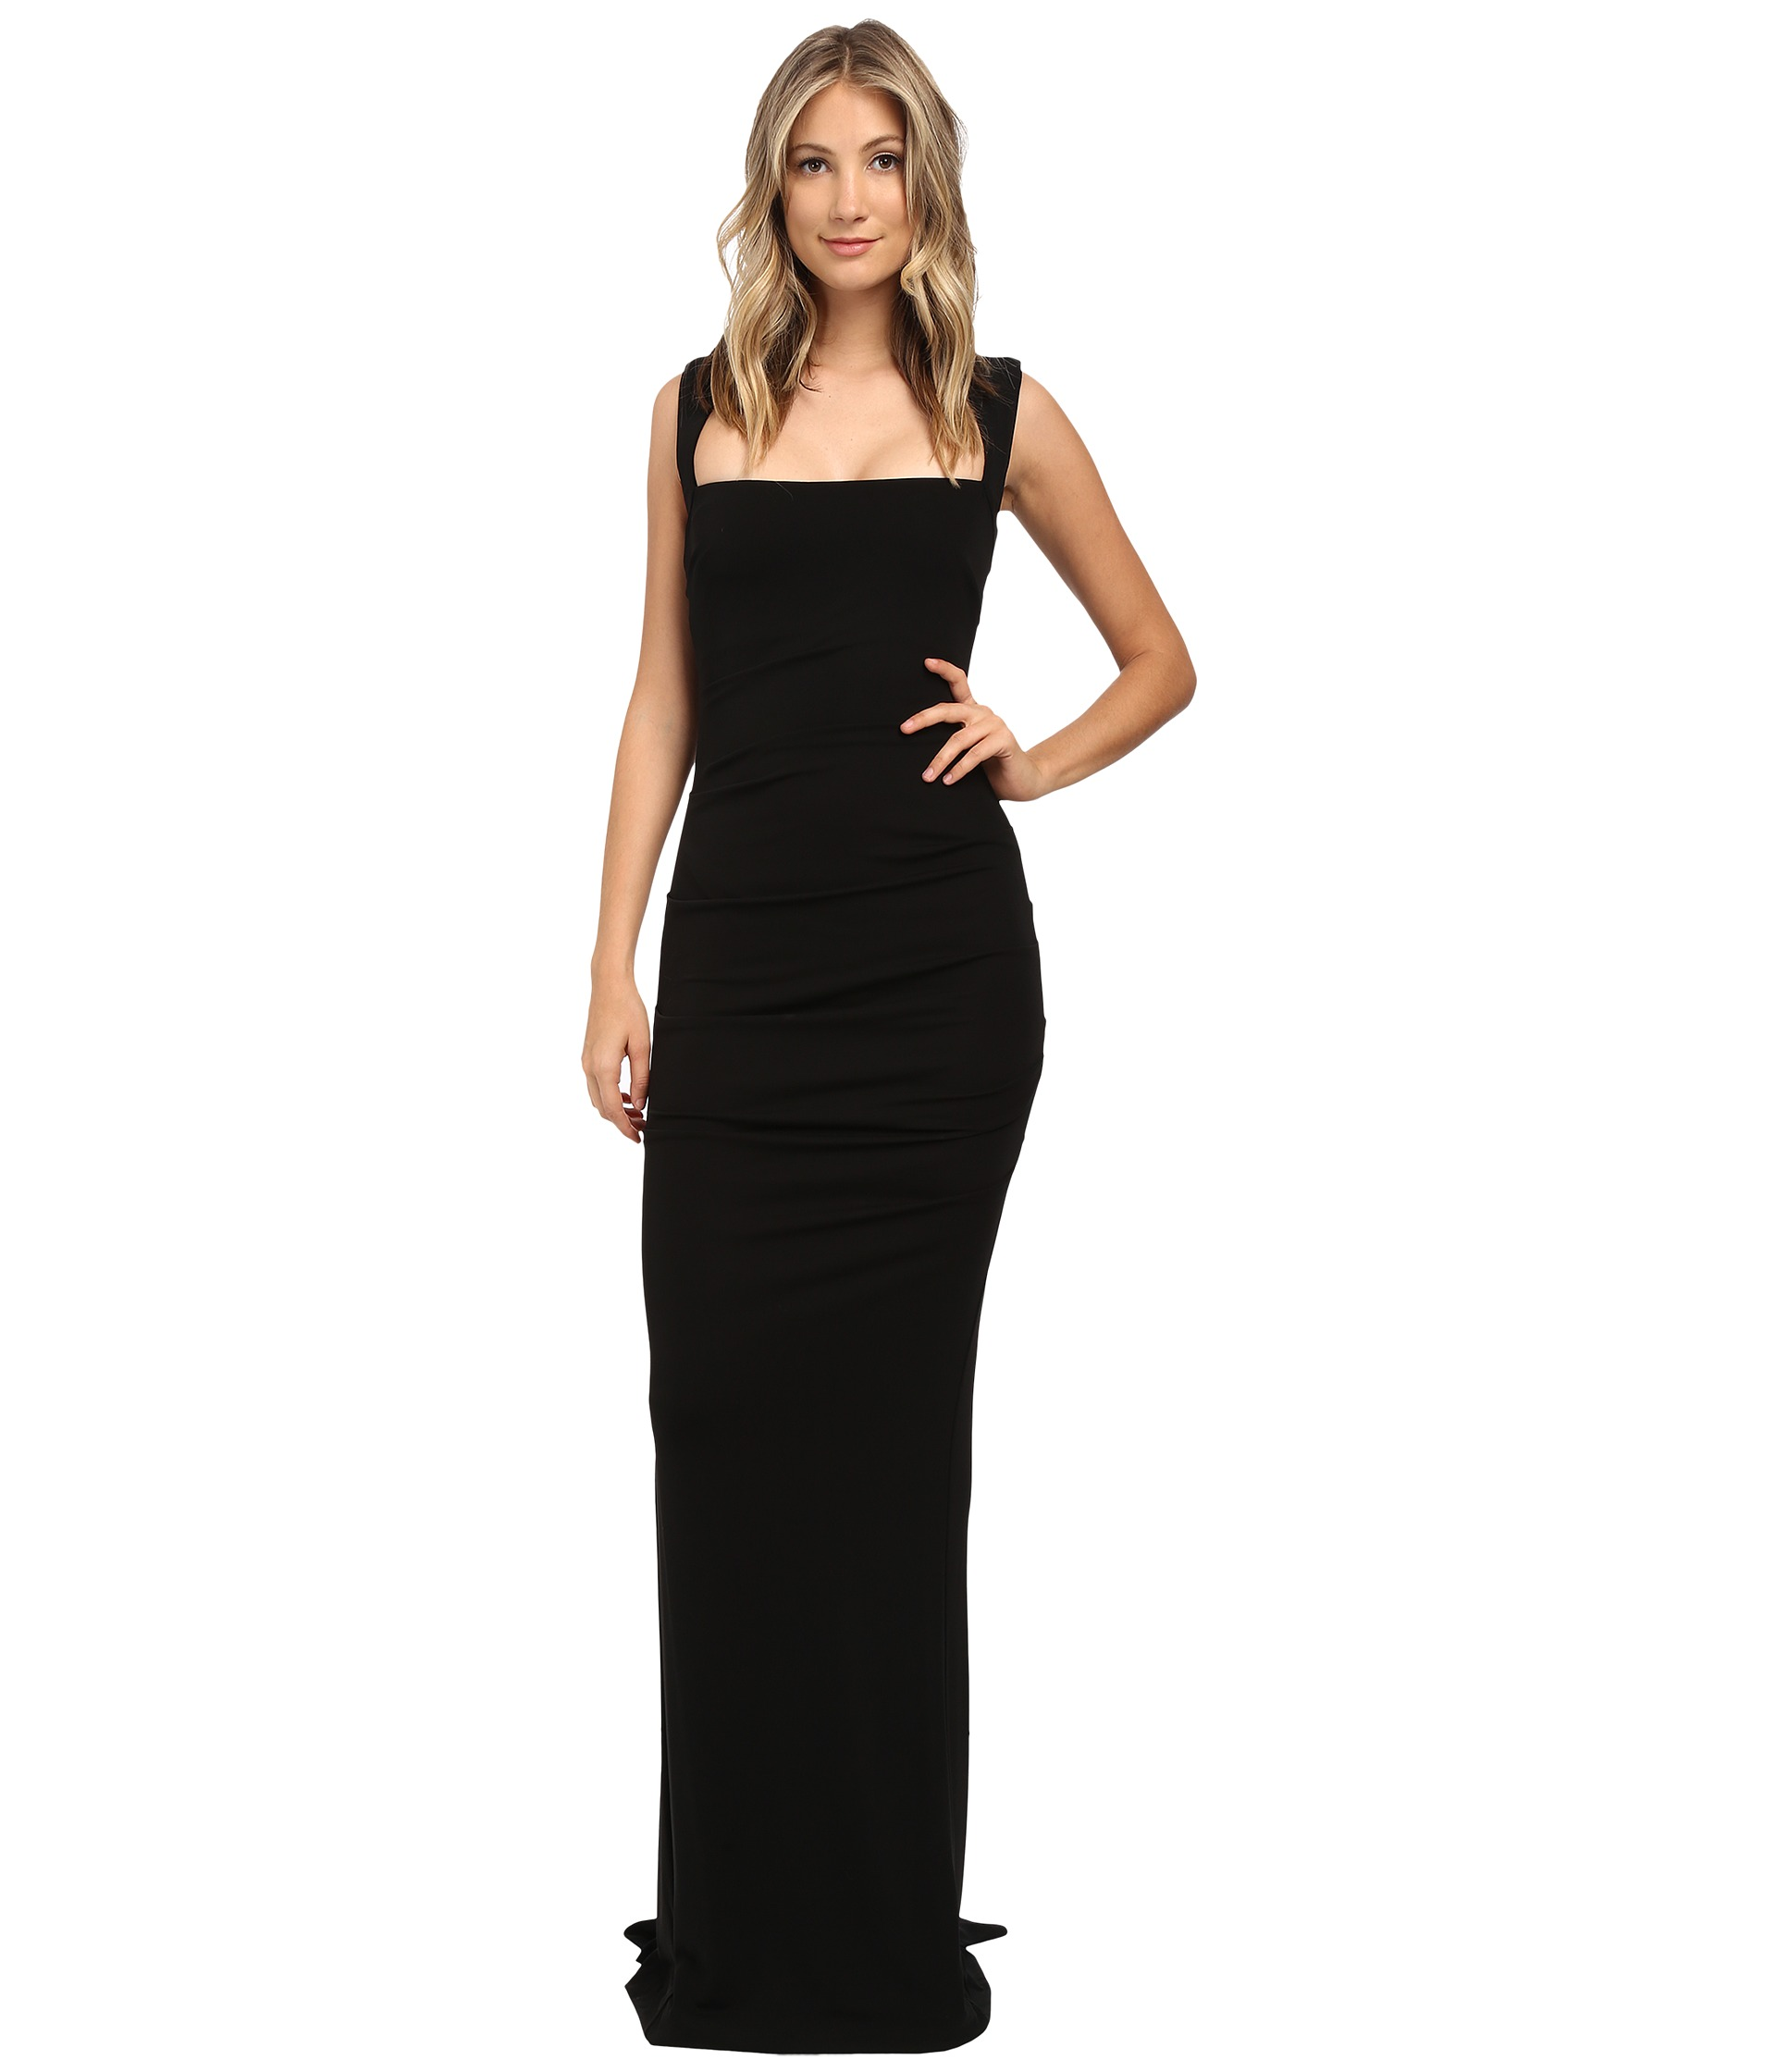 Nicole Miller Felicity Open Back Jersey Gown At Zappos.com